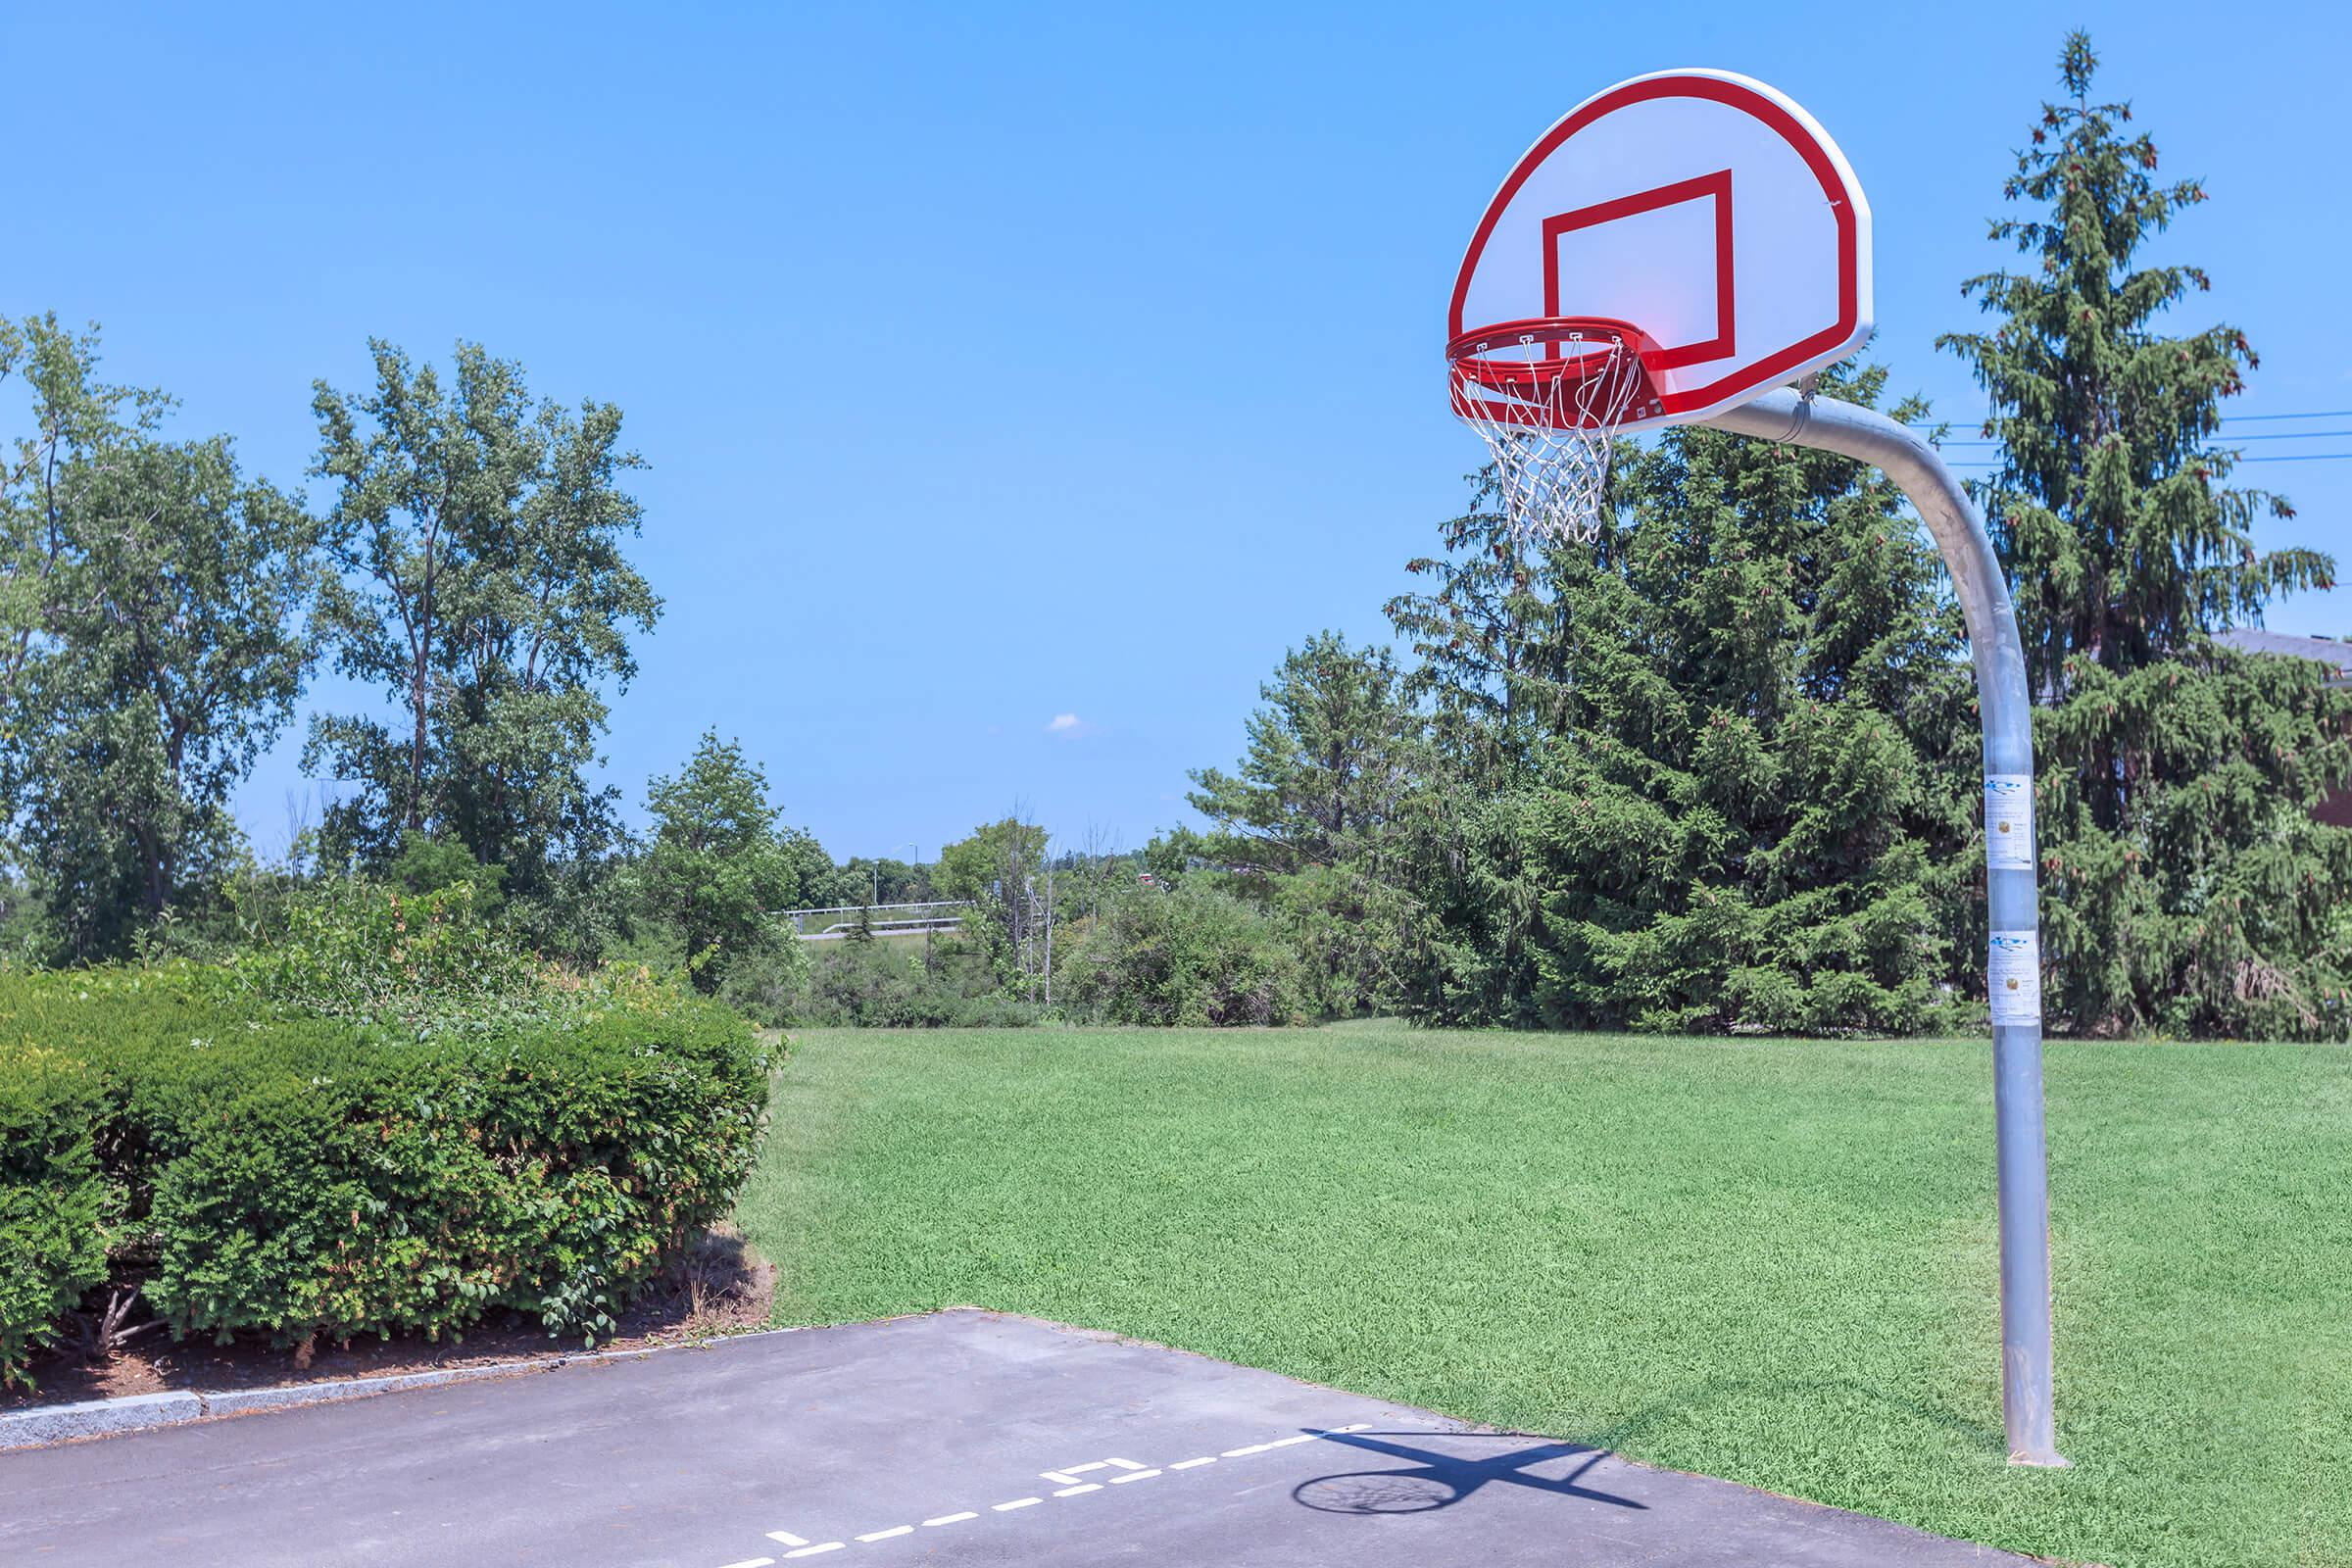 a close up of a basketball hoop